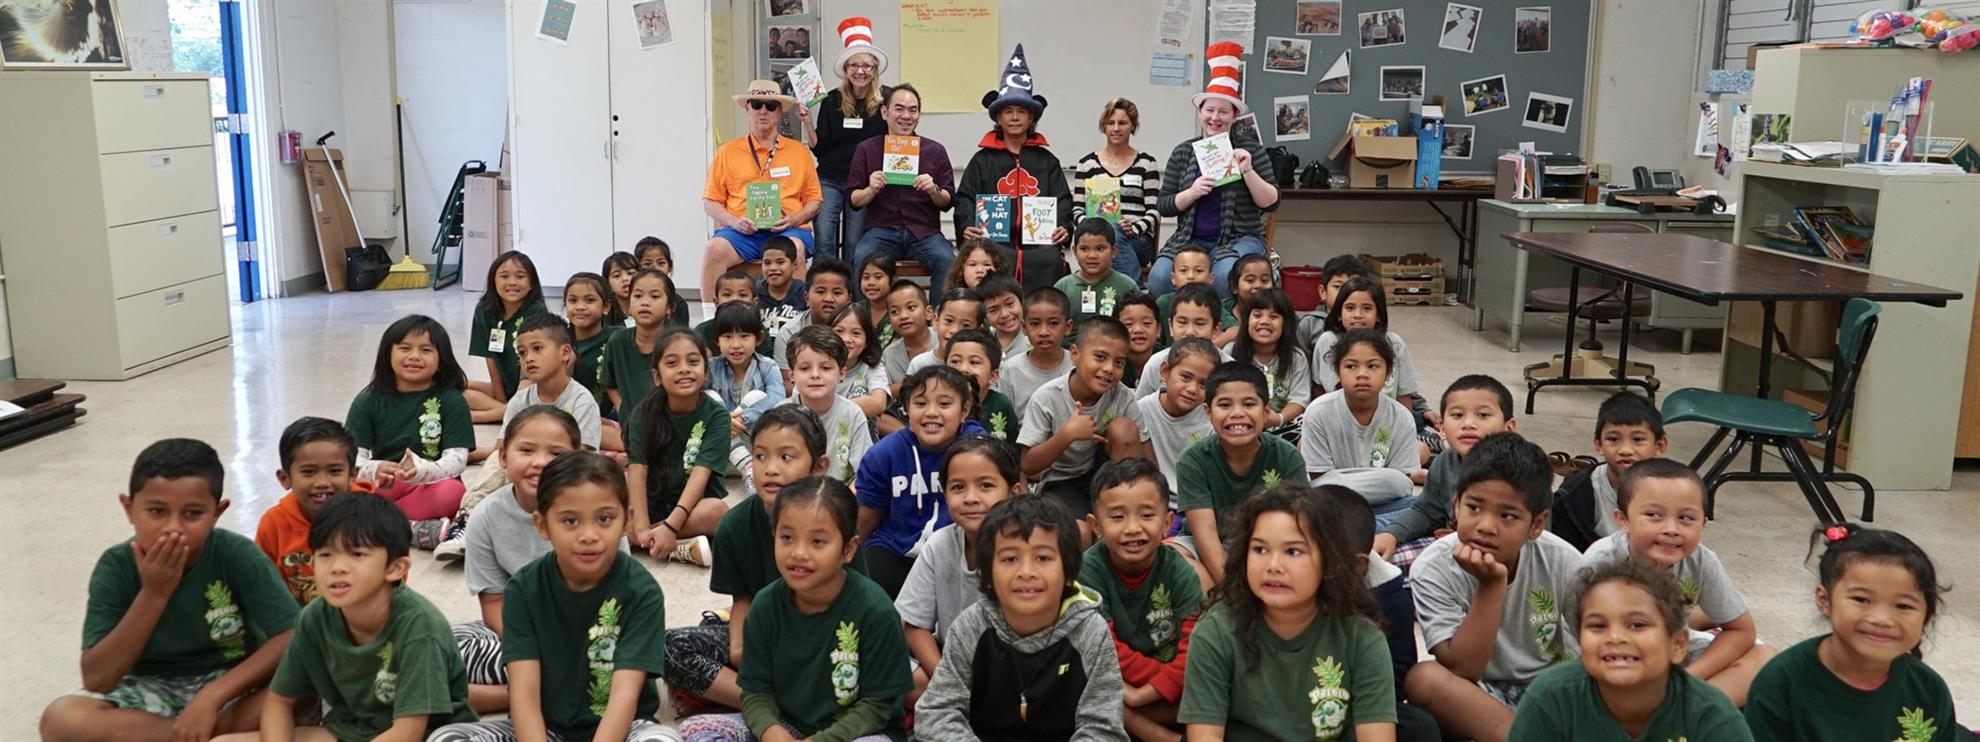 Palolo Elementary Dr. Seuss Reading Project